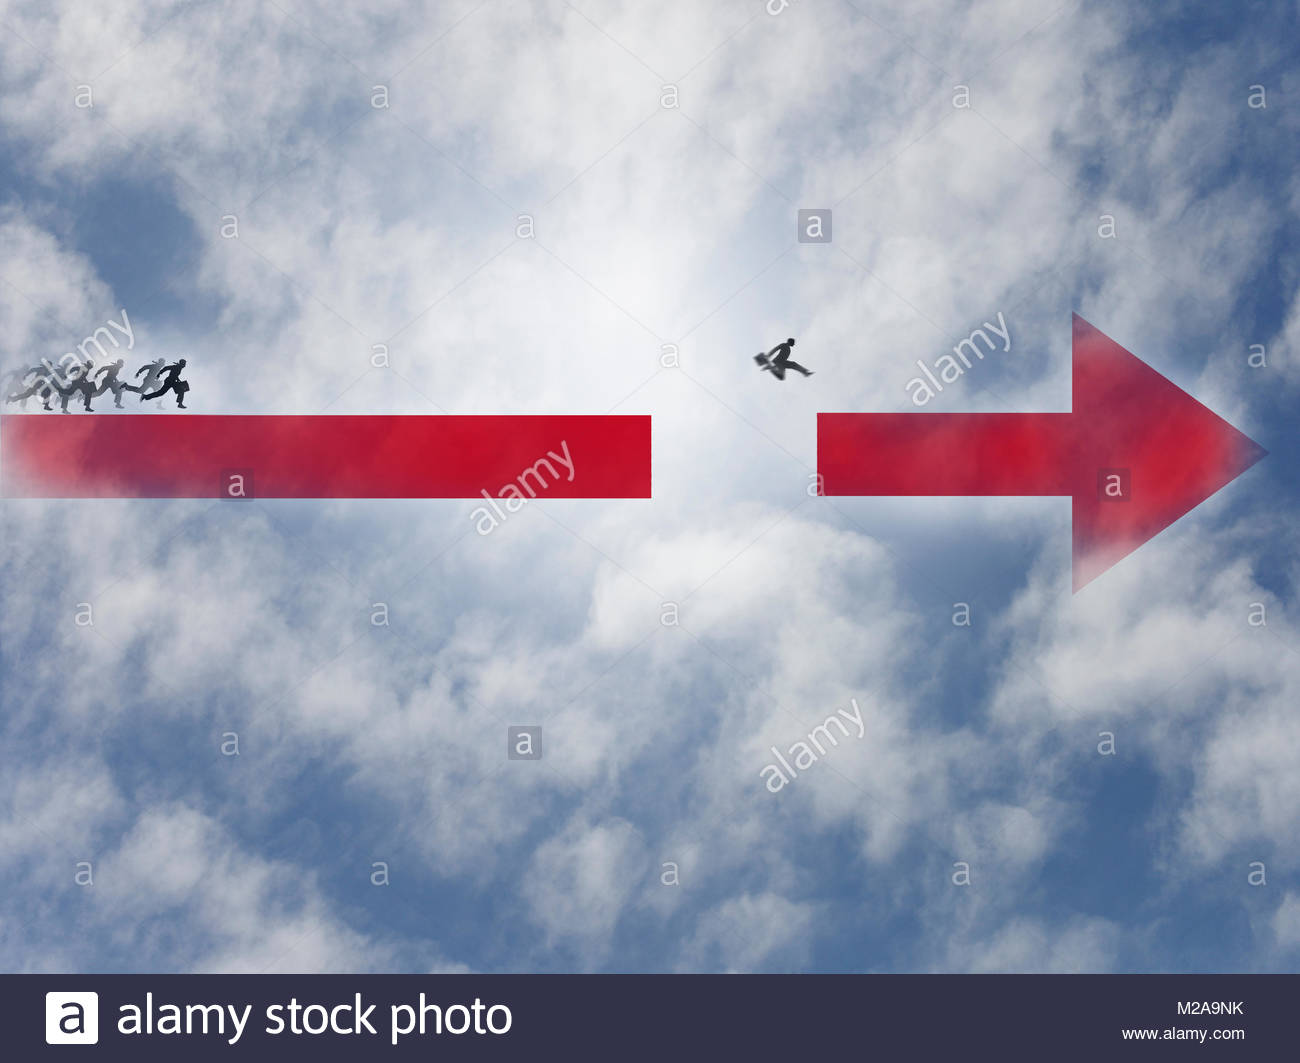 Businessman winning the race jumping across the gap in arrow - Stock Image